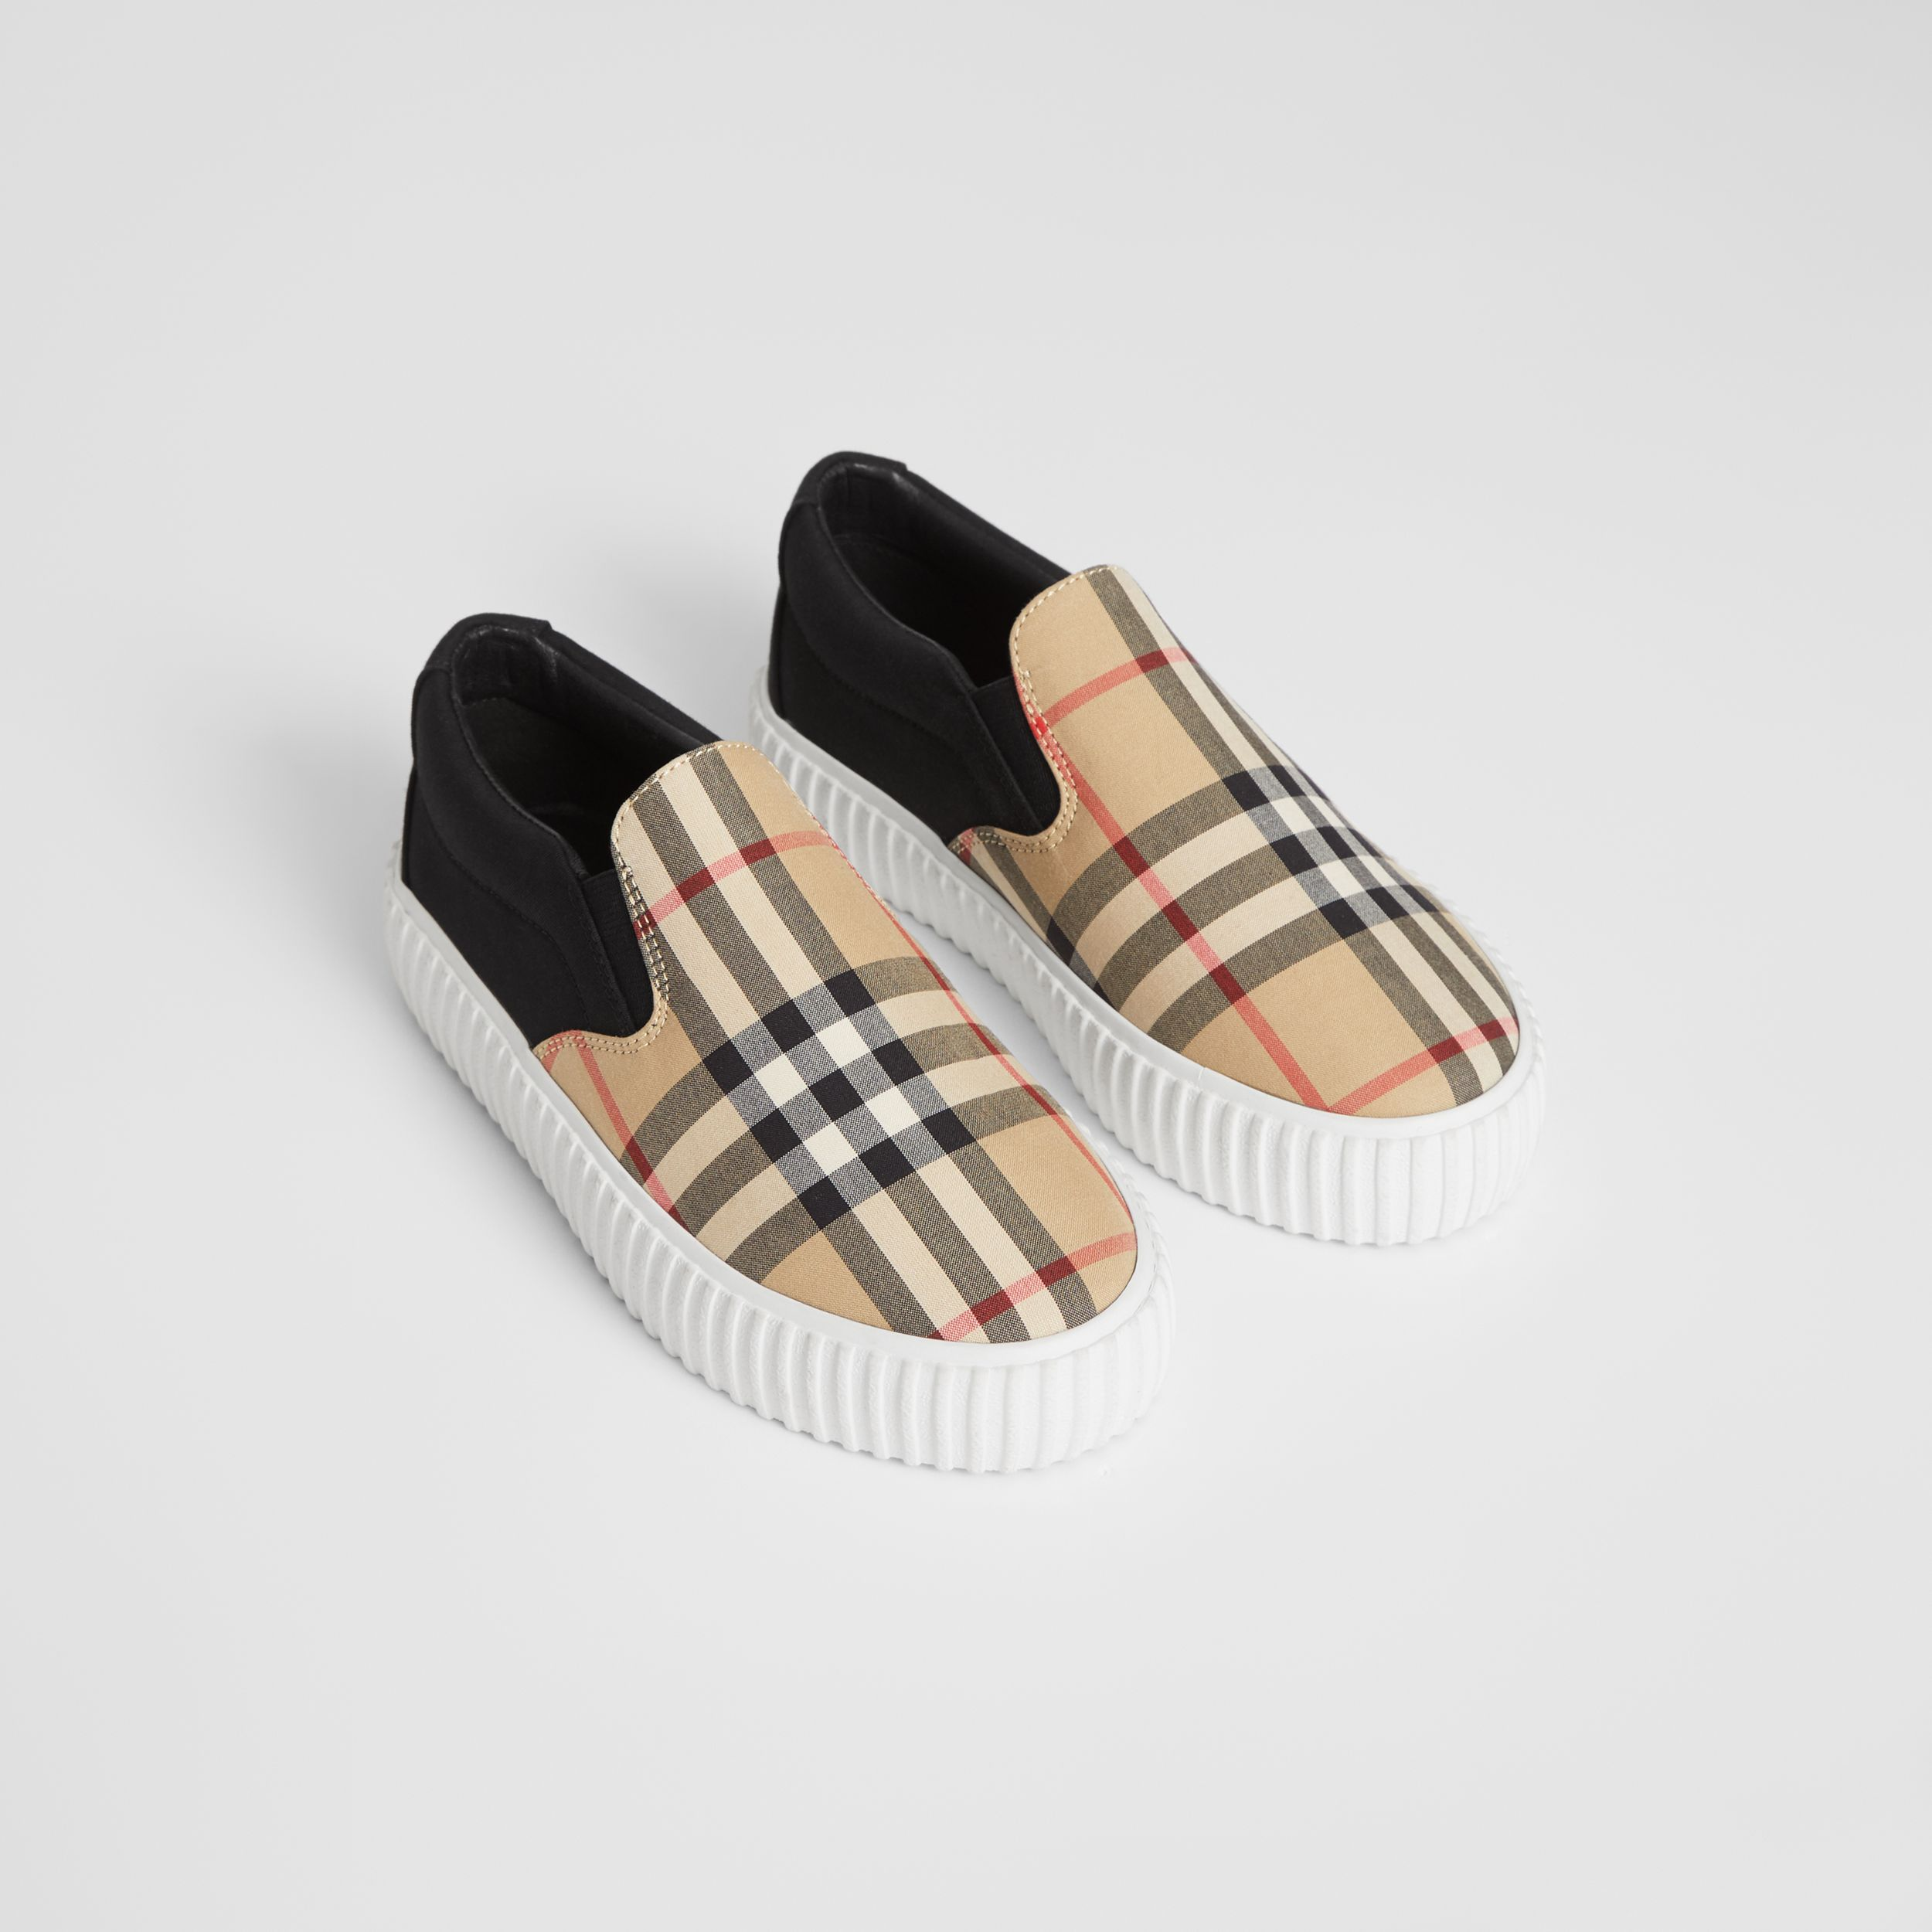 Vintage Check Detail Cotton Slip-on Sneakers in Archive Beige/black - Children | Burberry - 1